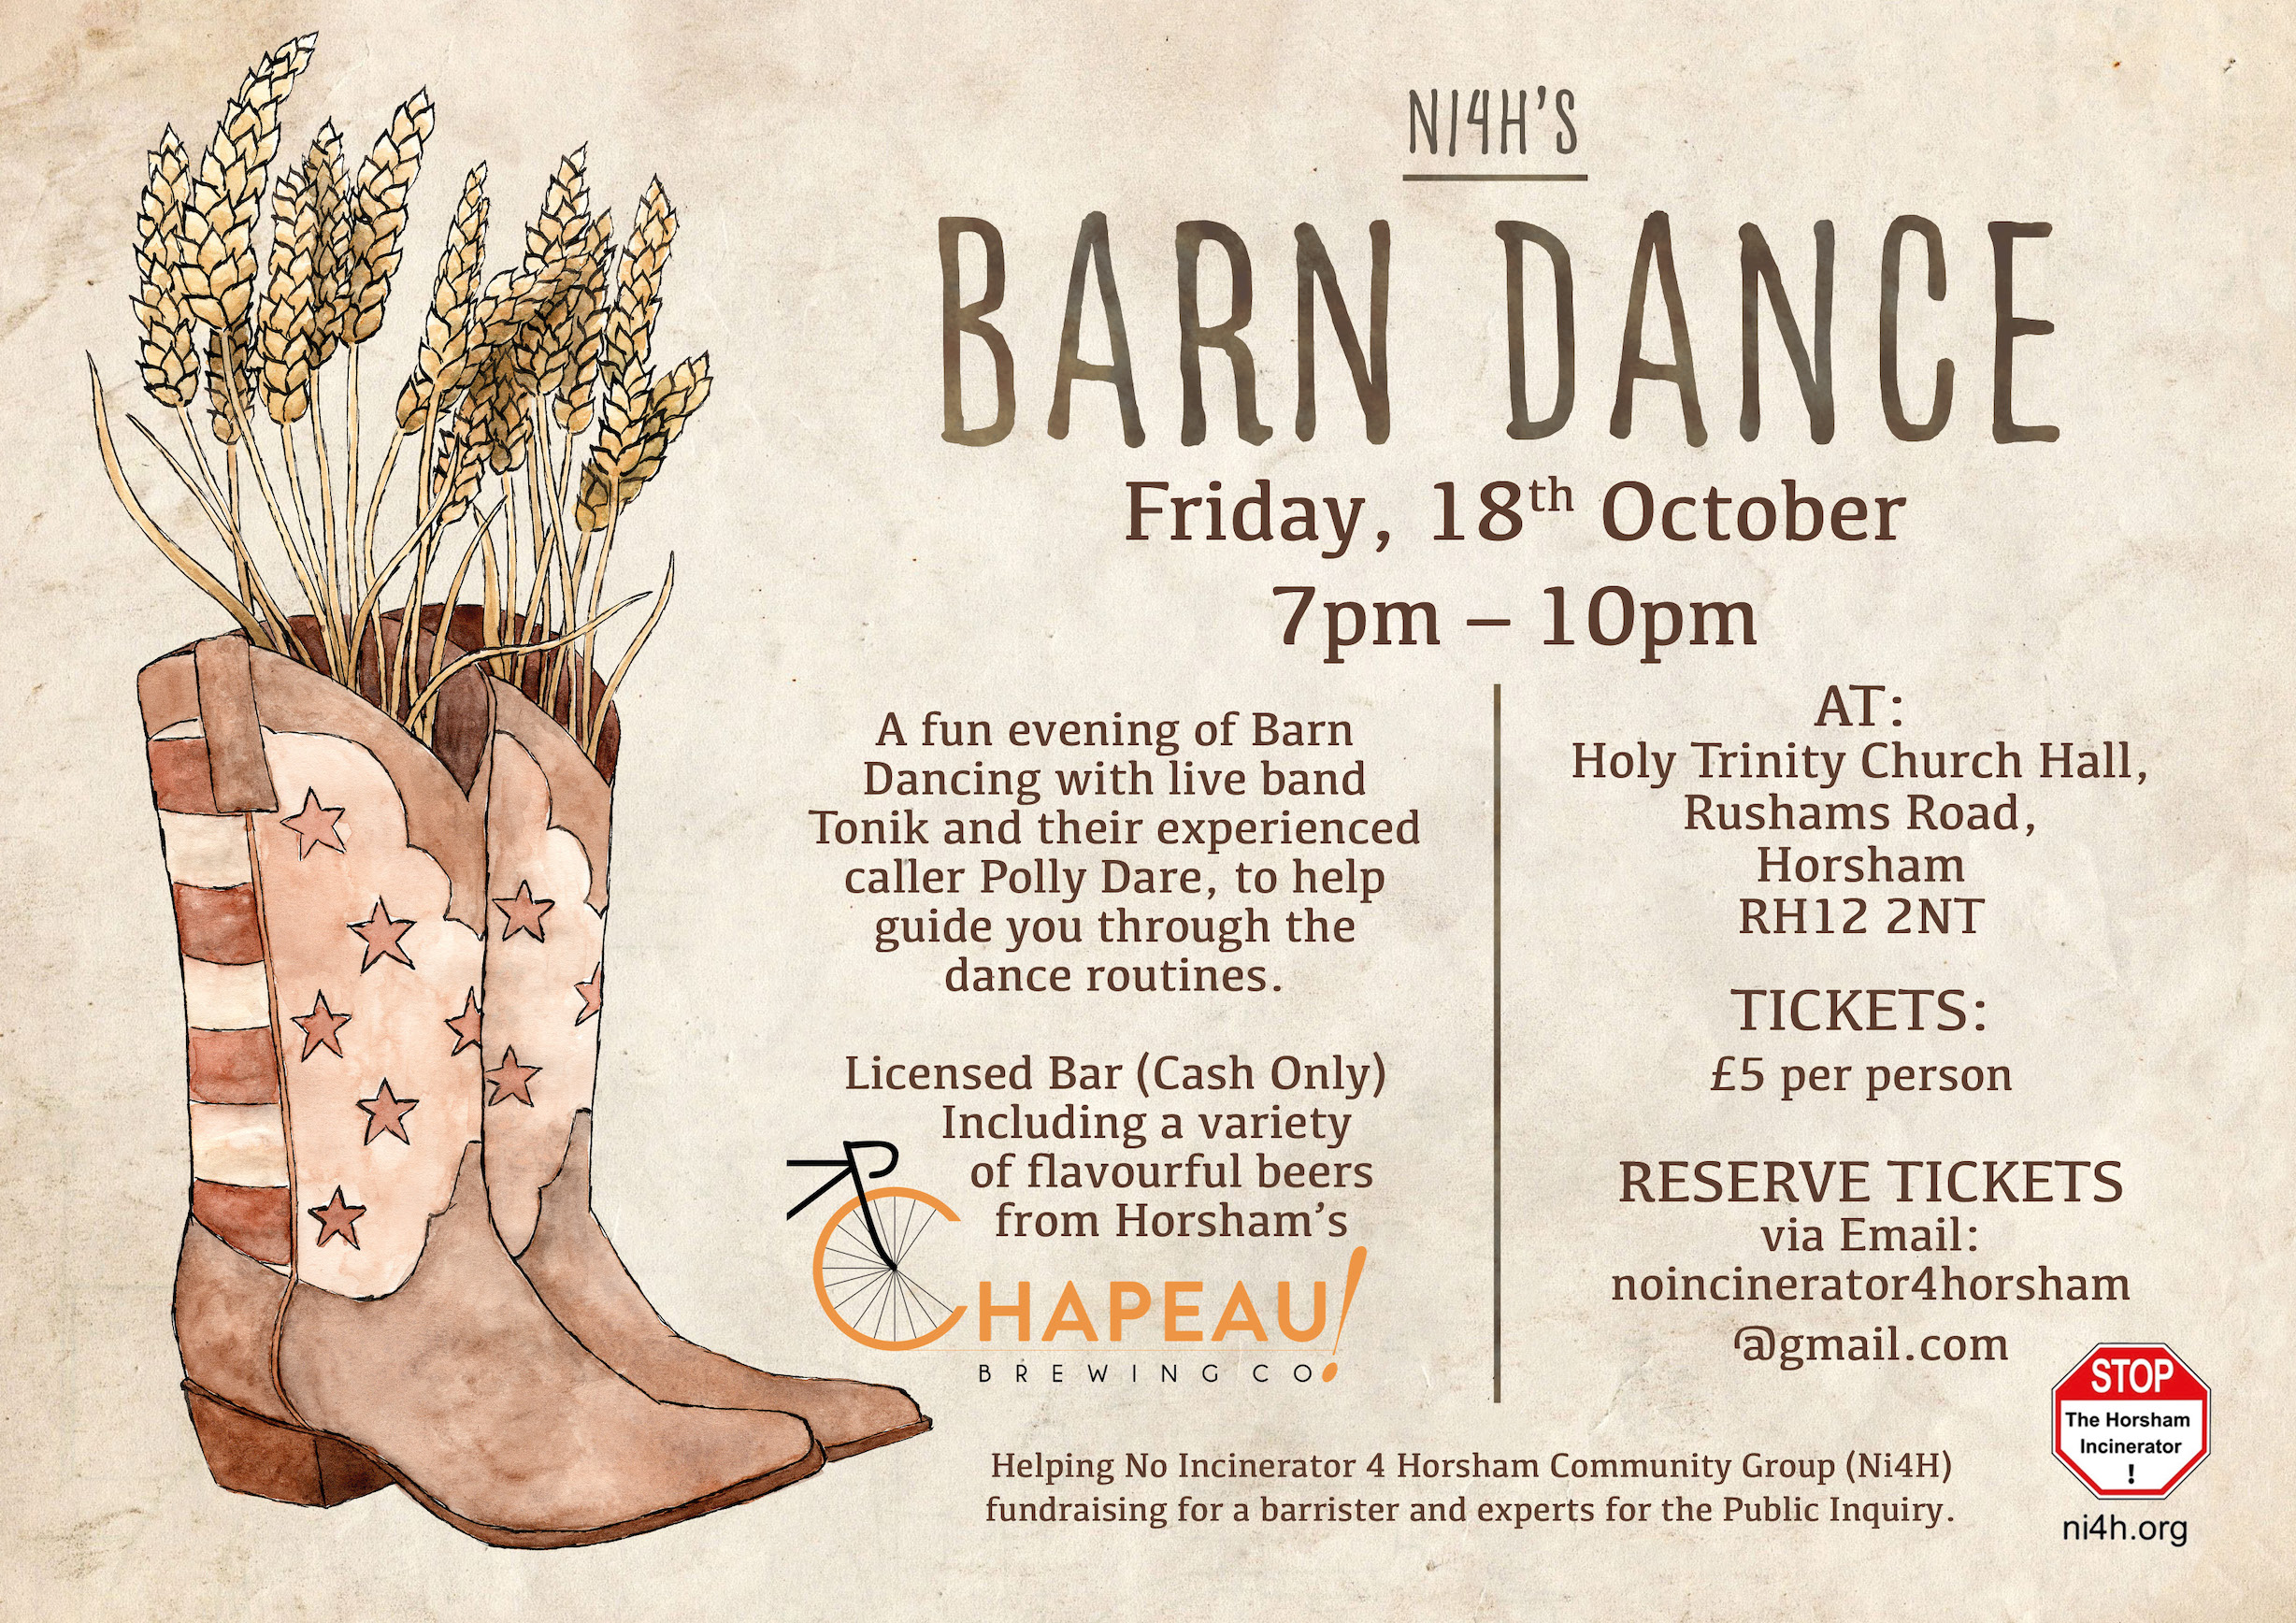 Barn Dance - Landscape Event Poster